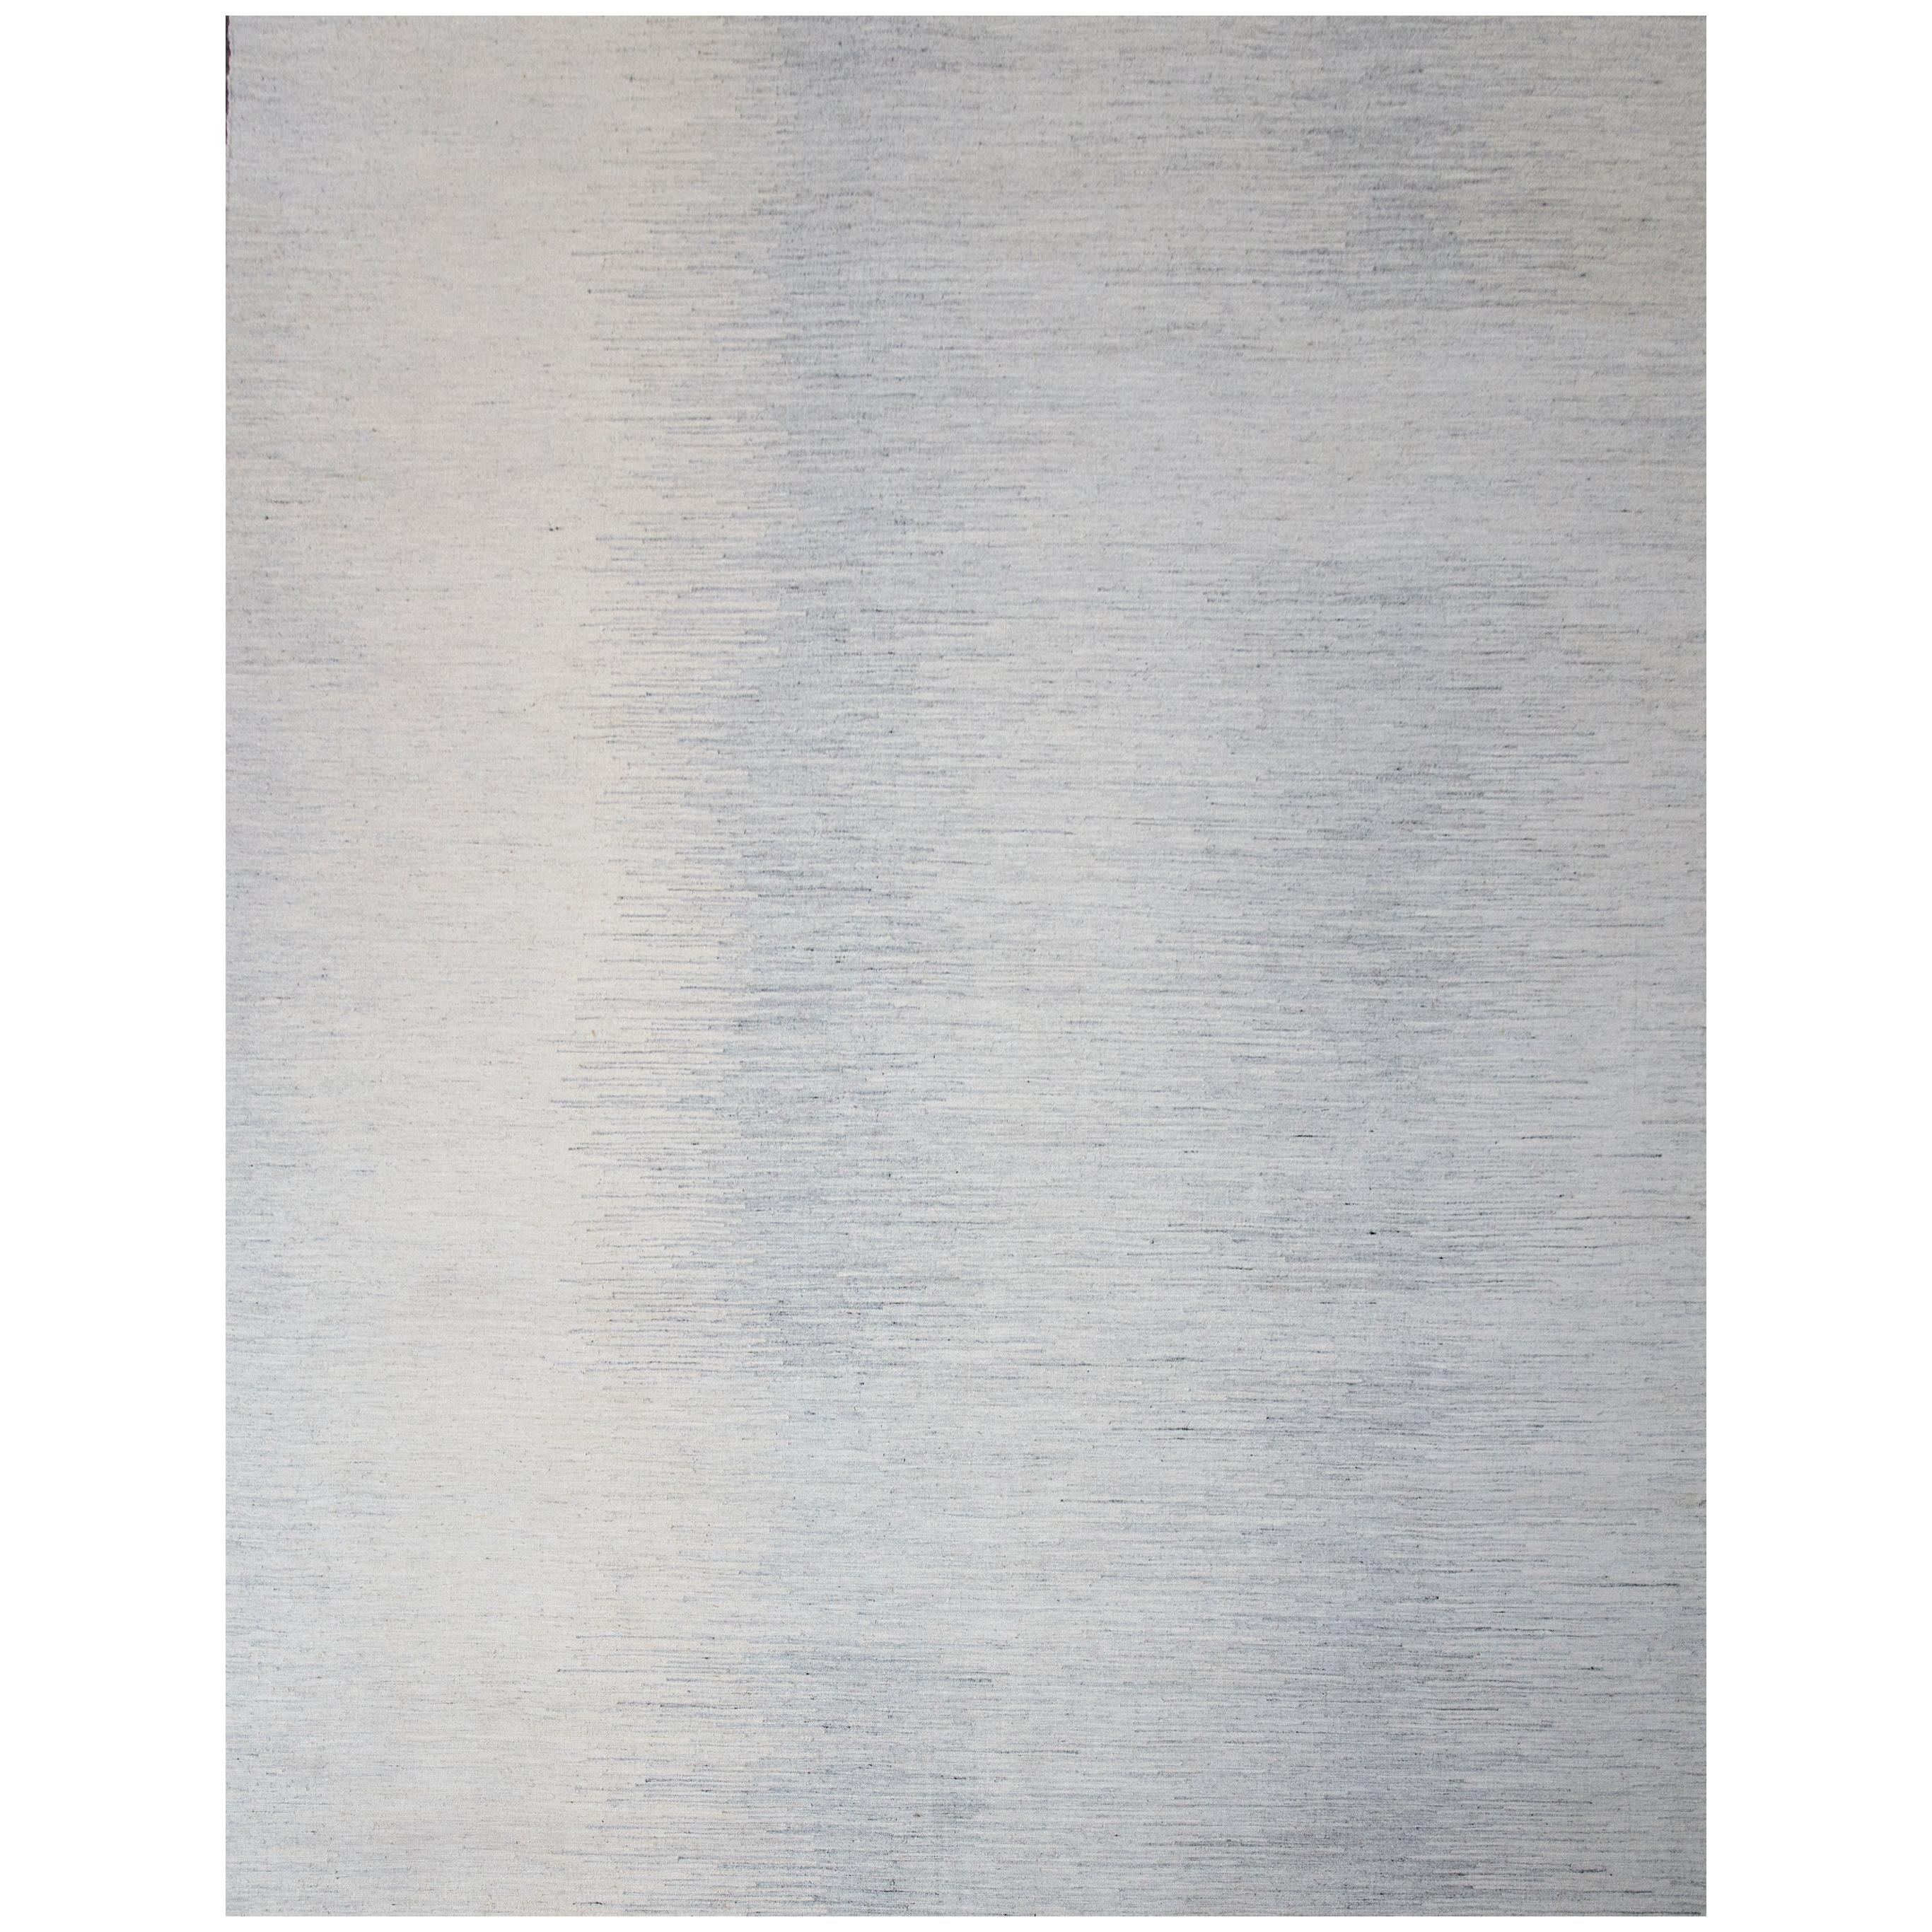 Modern Scandinavian Rug with 'Seismograph Wave' Patterns in Gray over Ivory